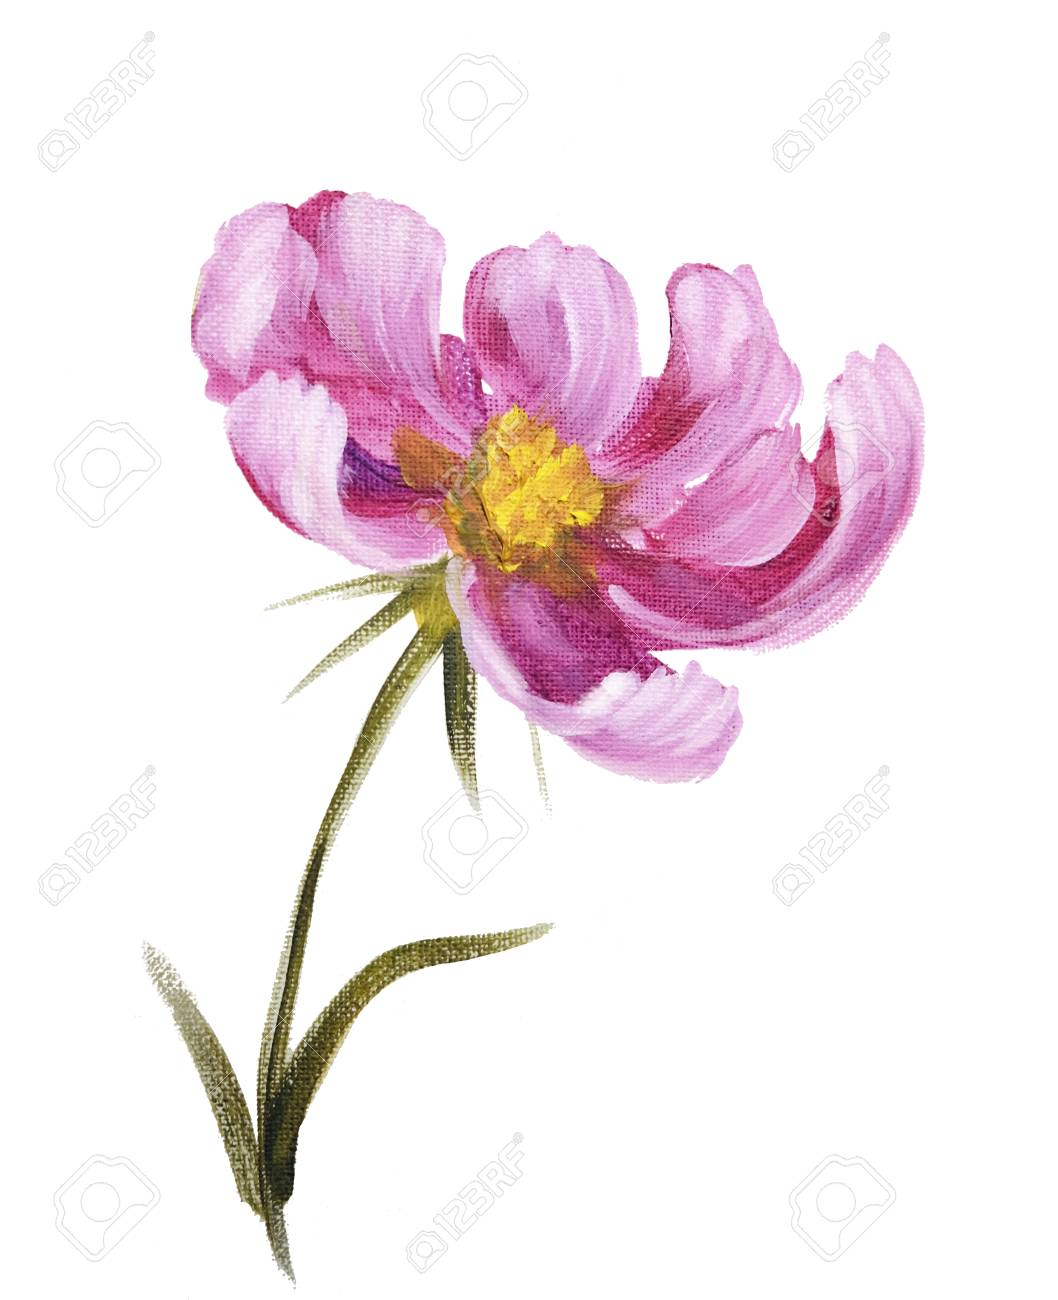 Pink Cosmos Flower Oil Painting On Canvas Isolated On White